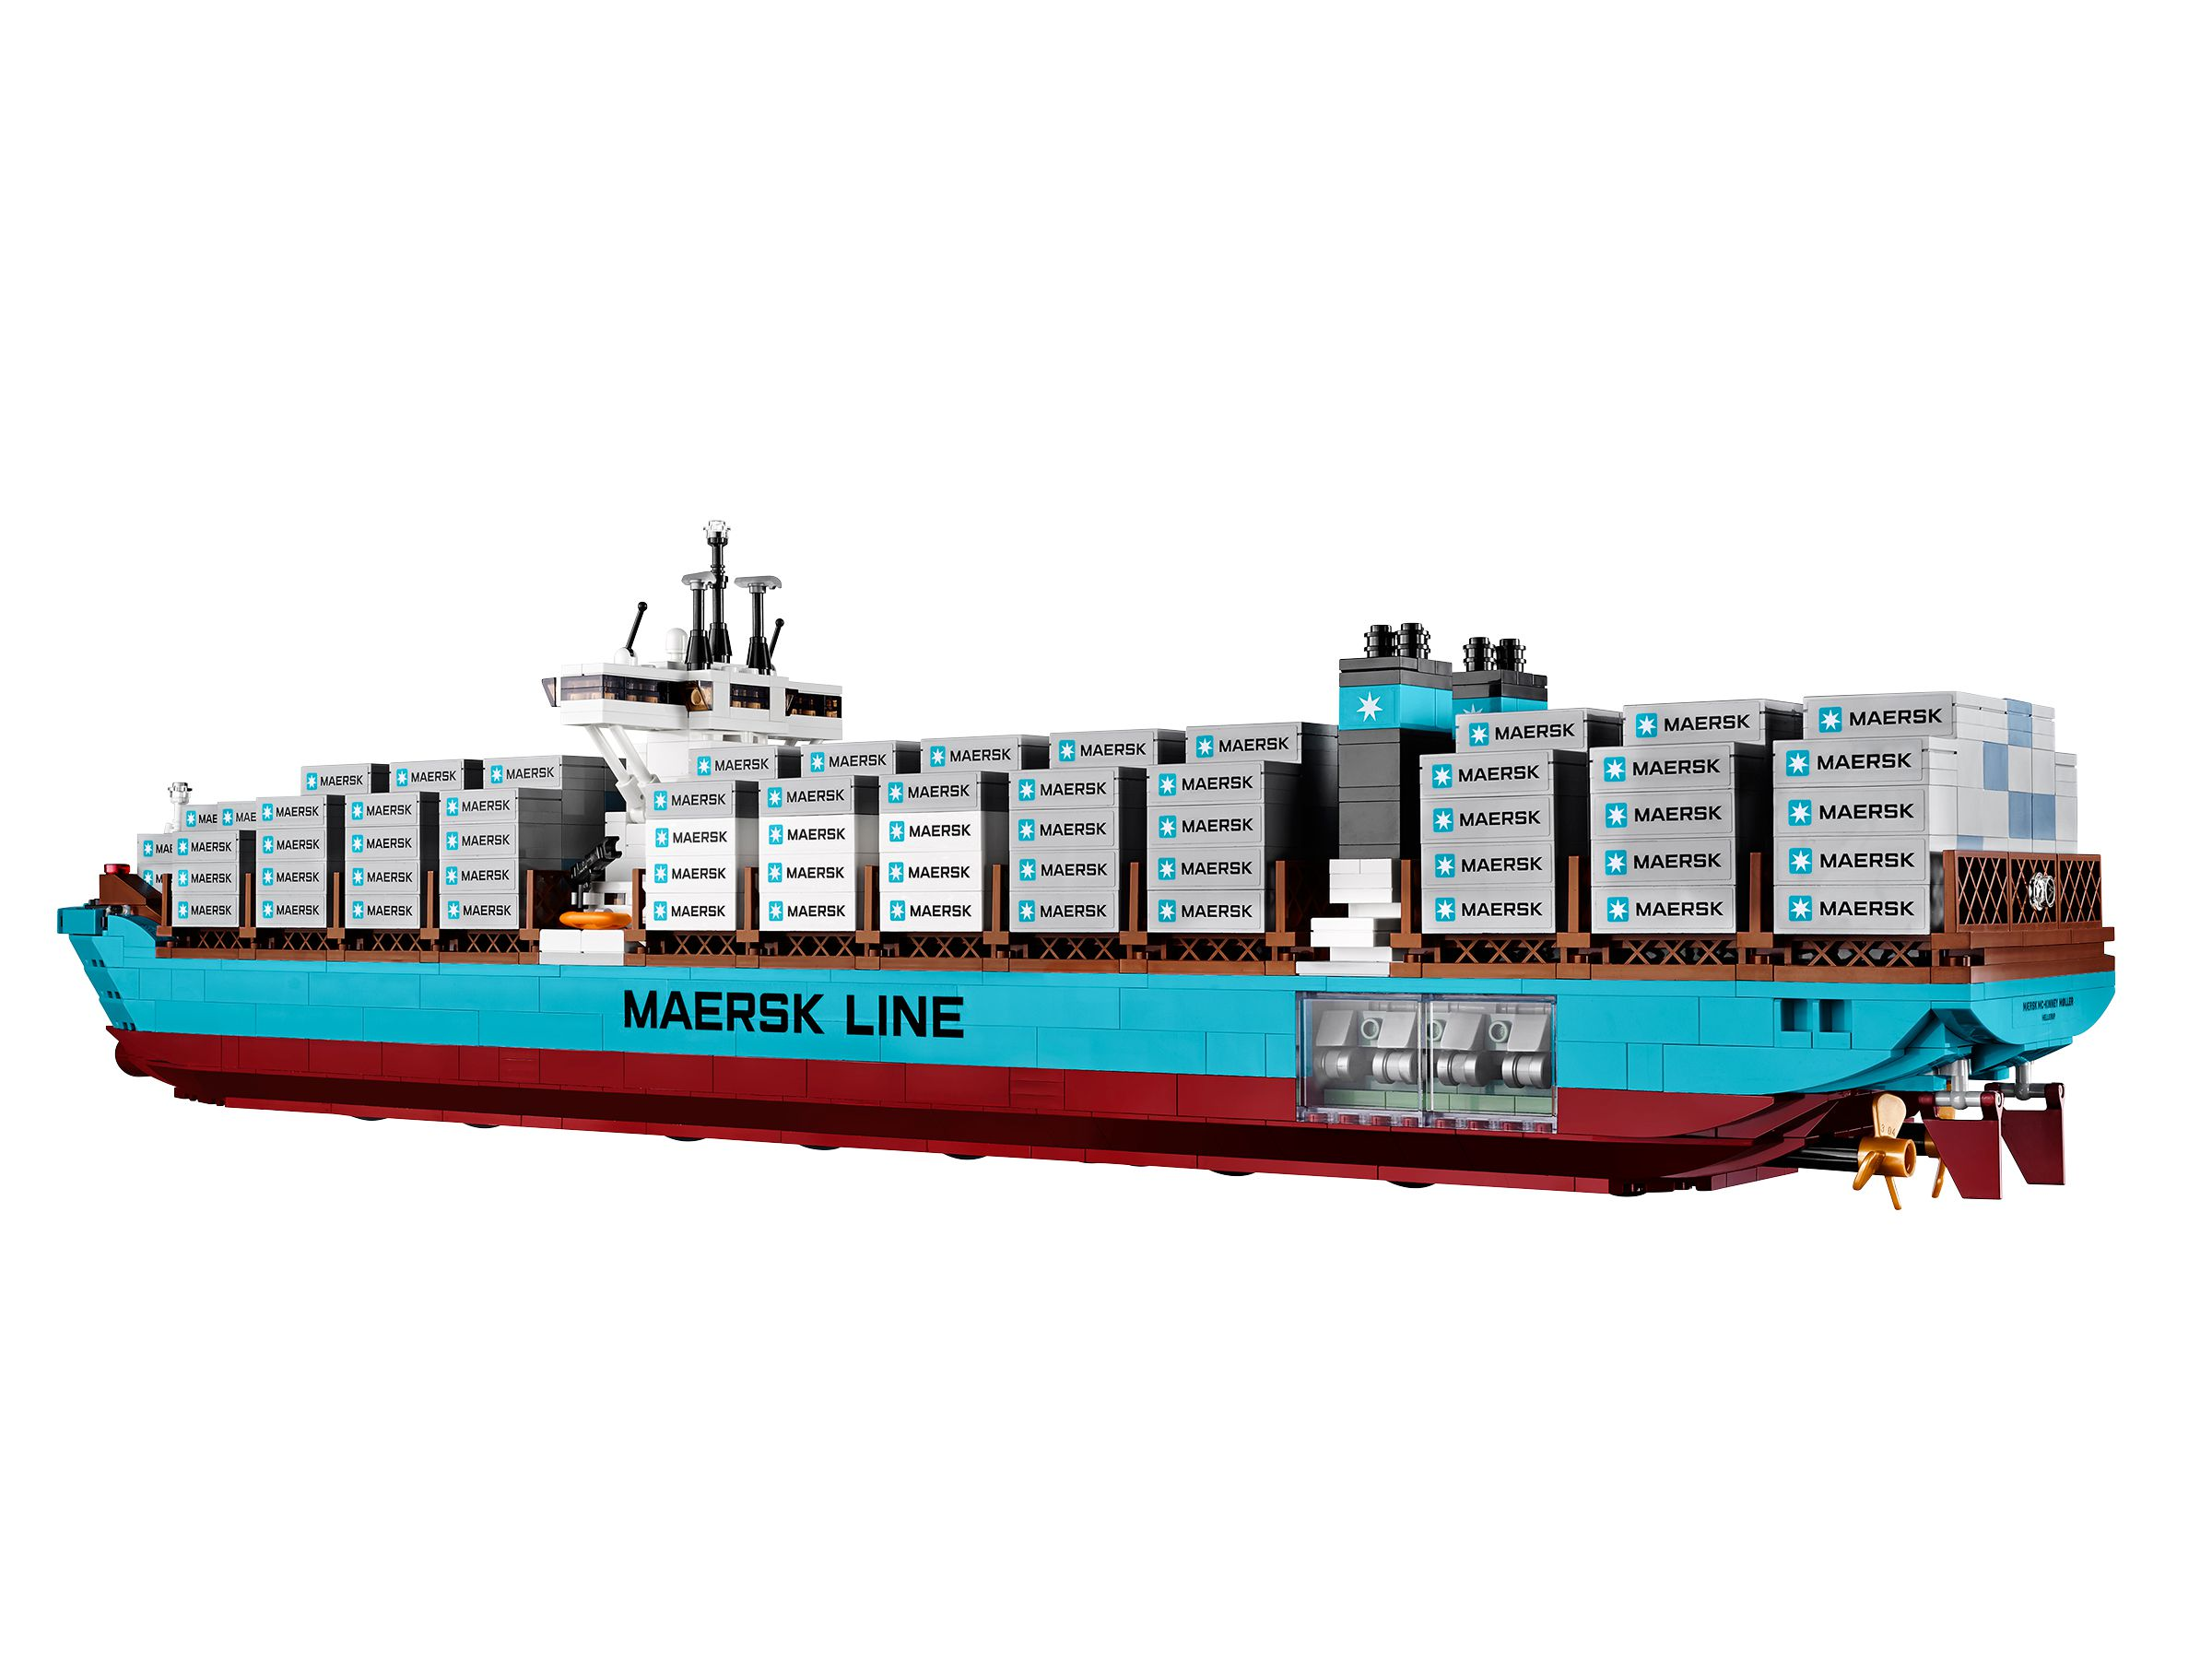 LEGO Advanced Models 10241 Maersk Containerschiff LEGO_10241_alt1.jpg